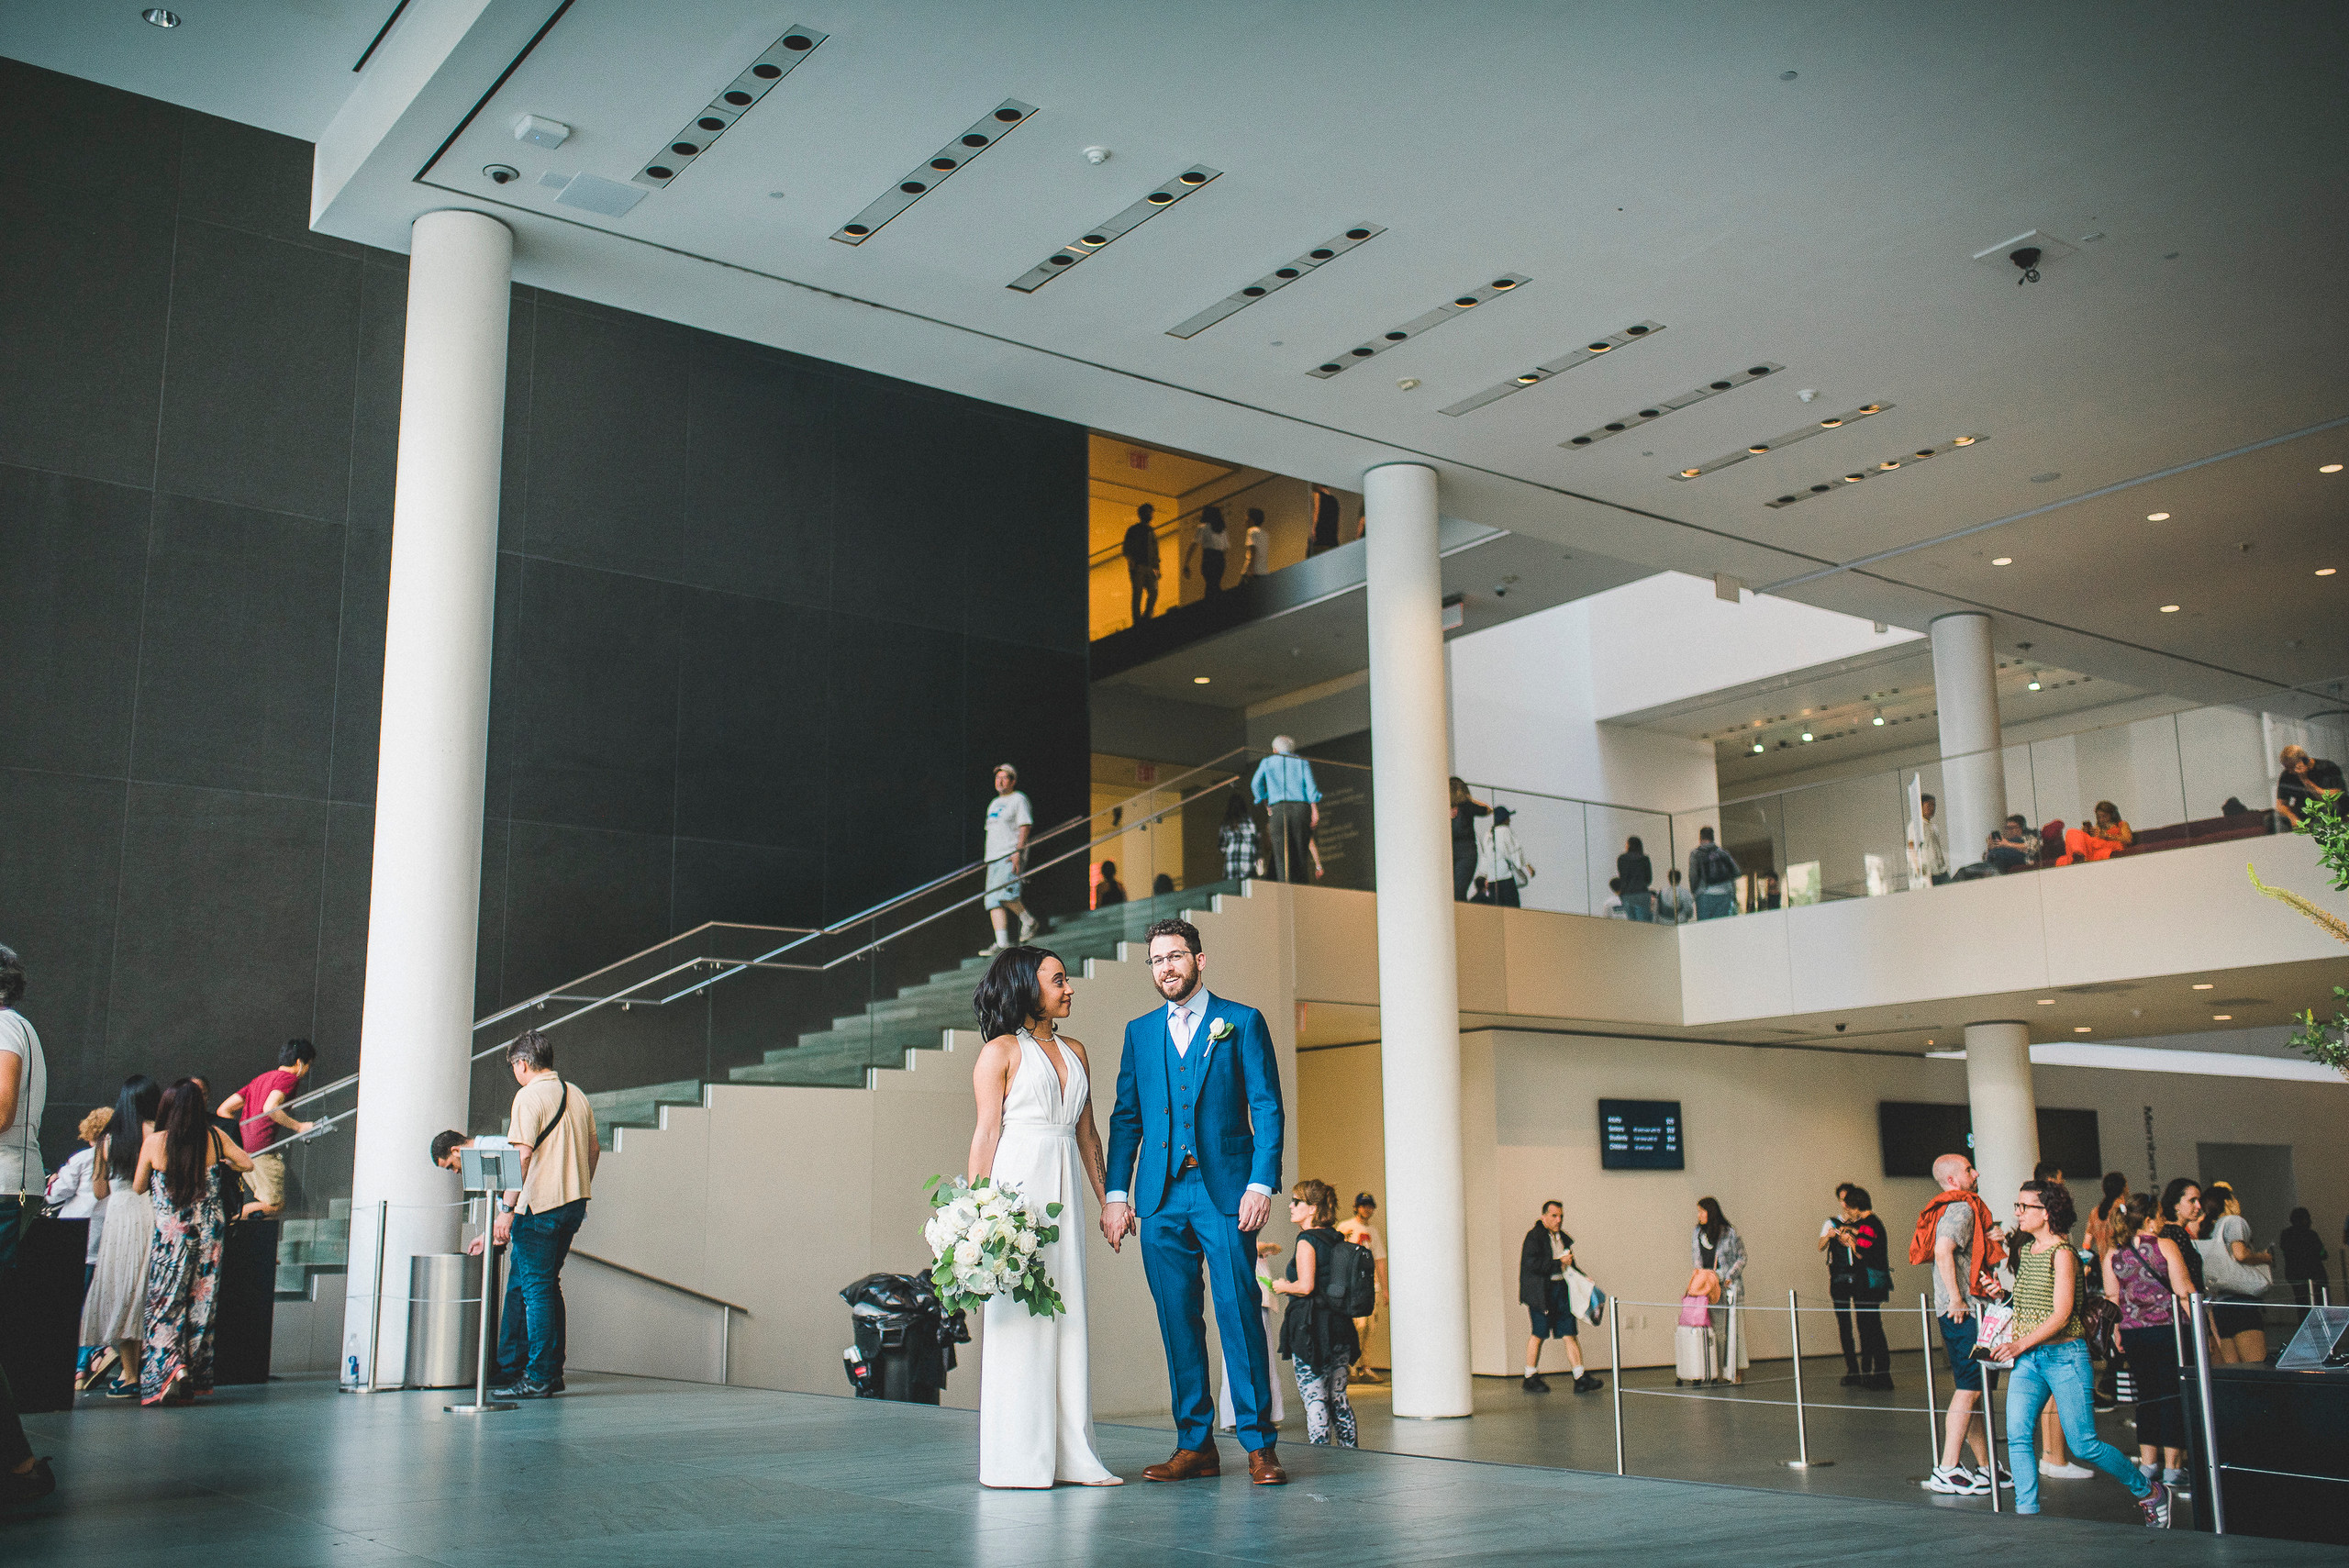 MoMA Entrance Bride and Groom NYC portrait wedding lobby